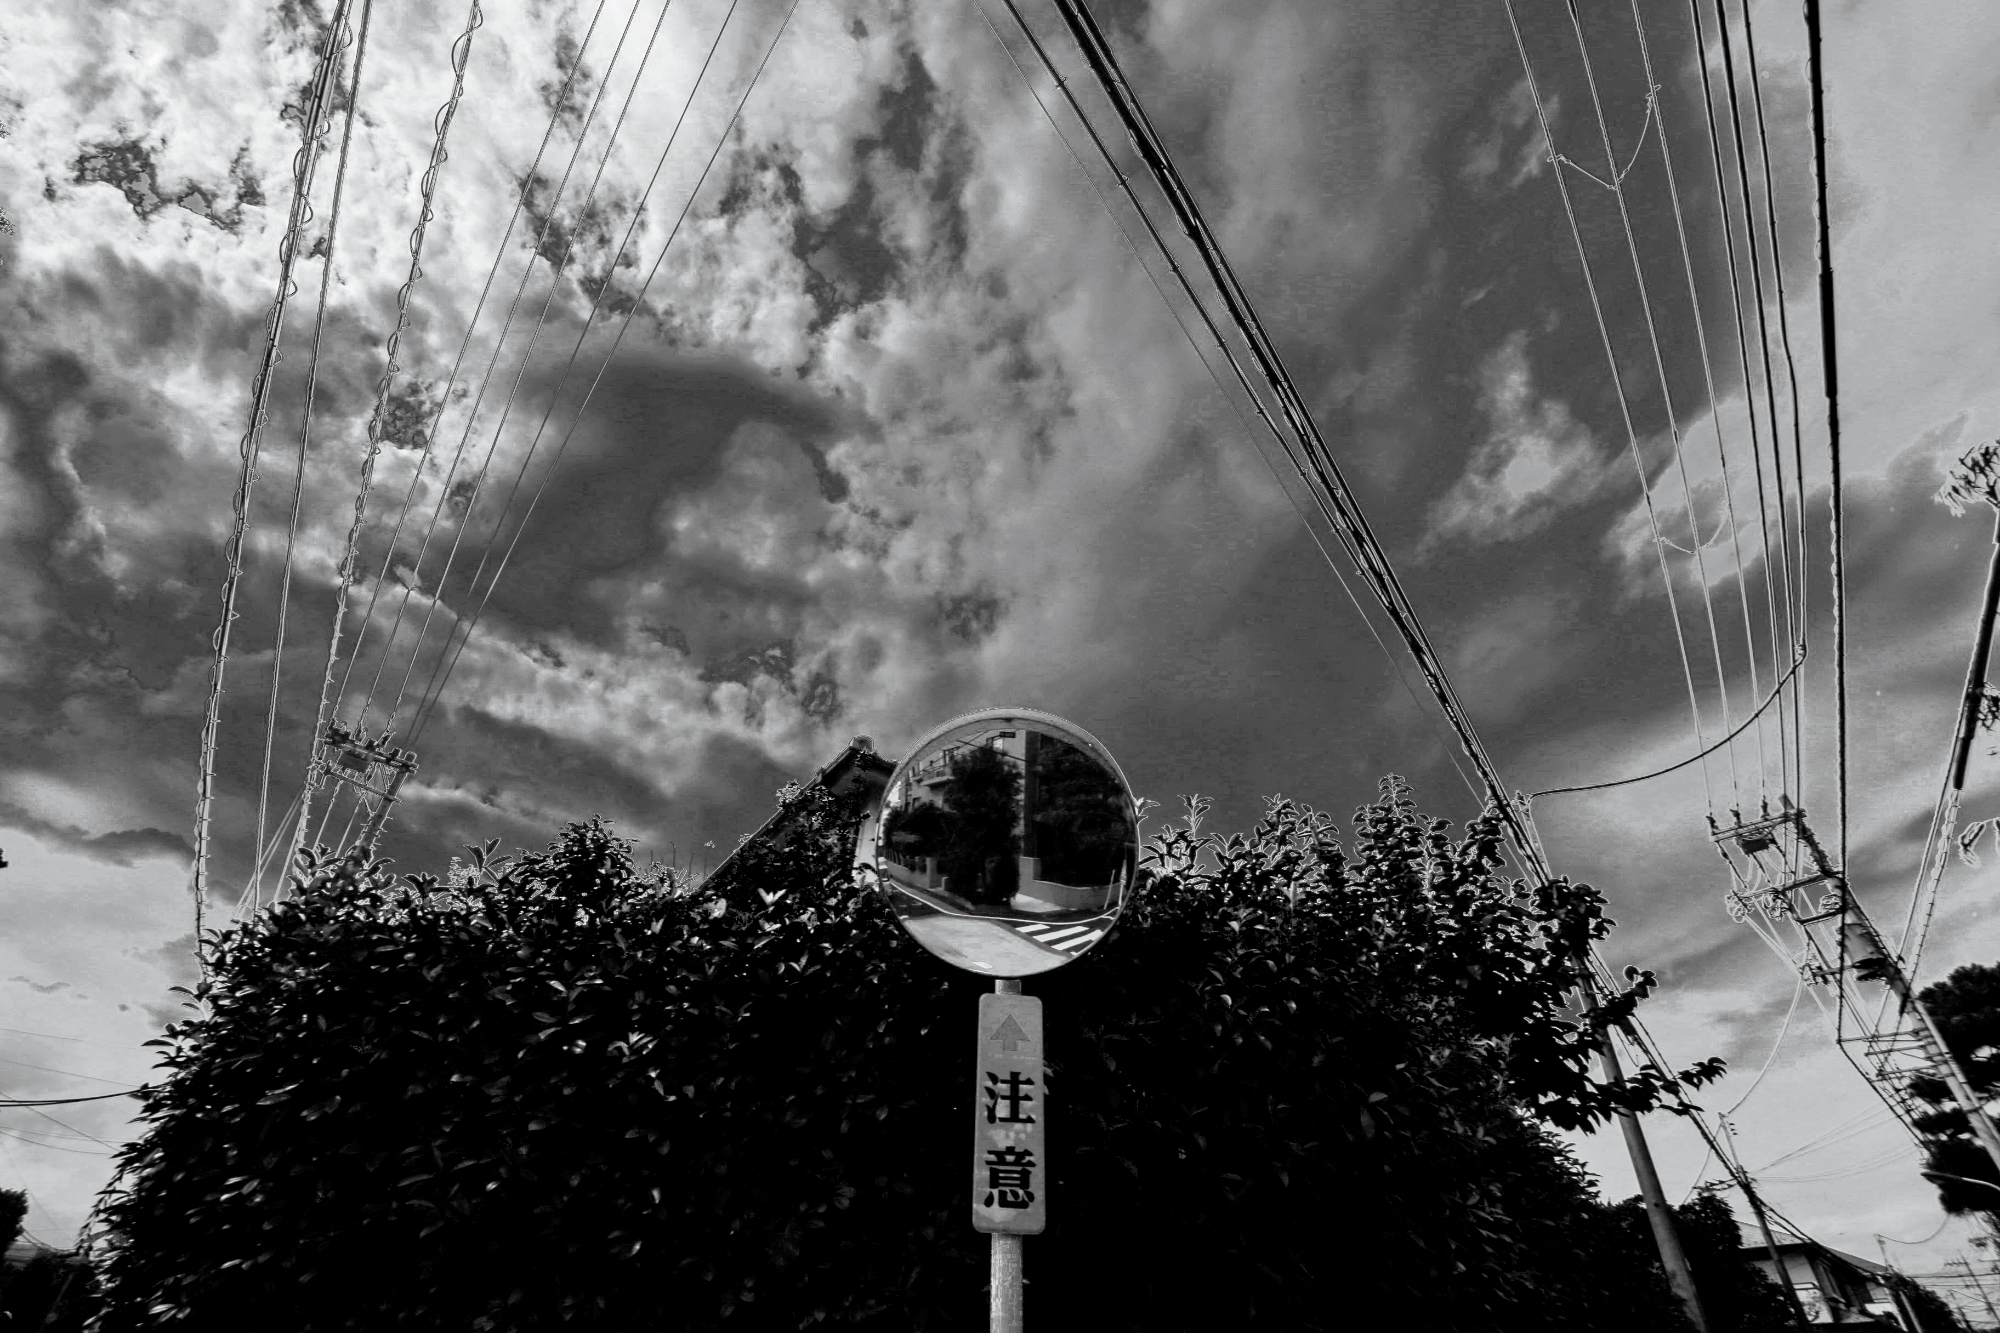 Black and white, symmetrical image with leading lines. The sky is cloudy, the focus is on a mirror reflecting the street below. Taken in Tokyo, Japan